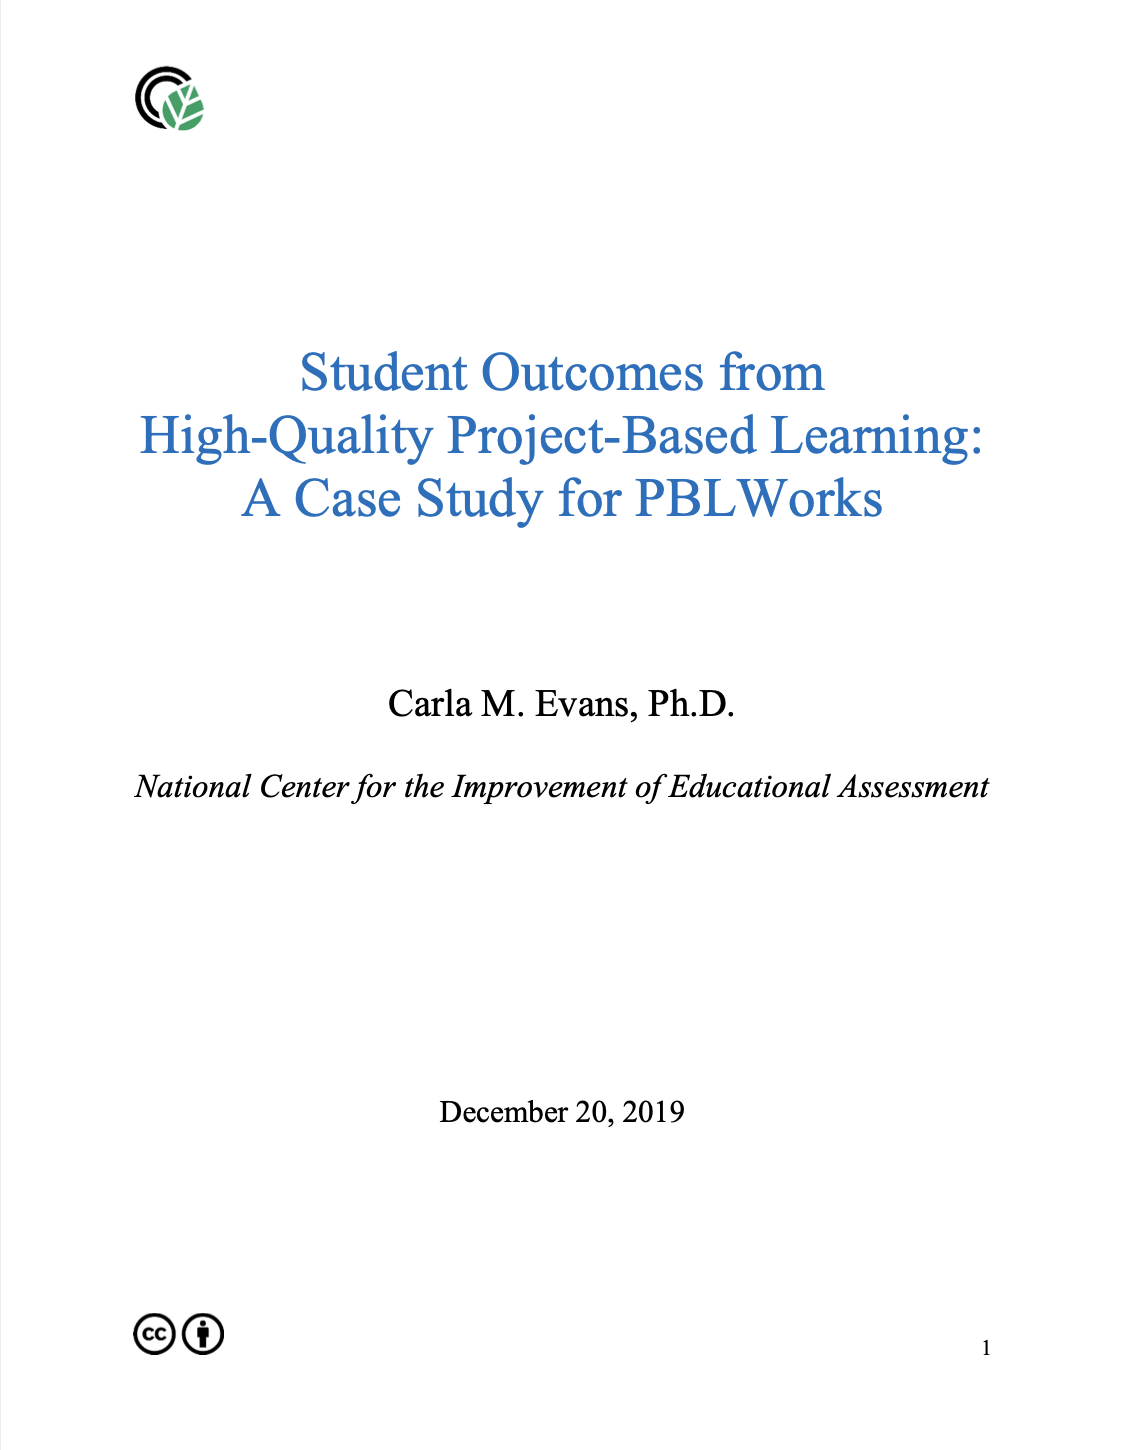 thumbnail of case study cover